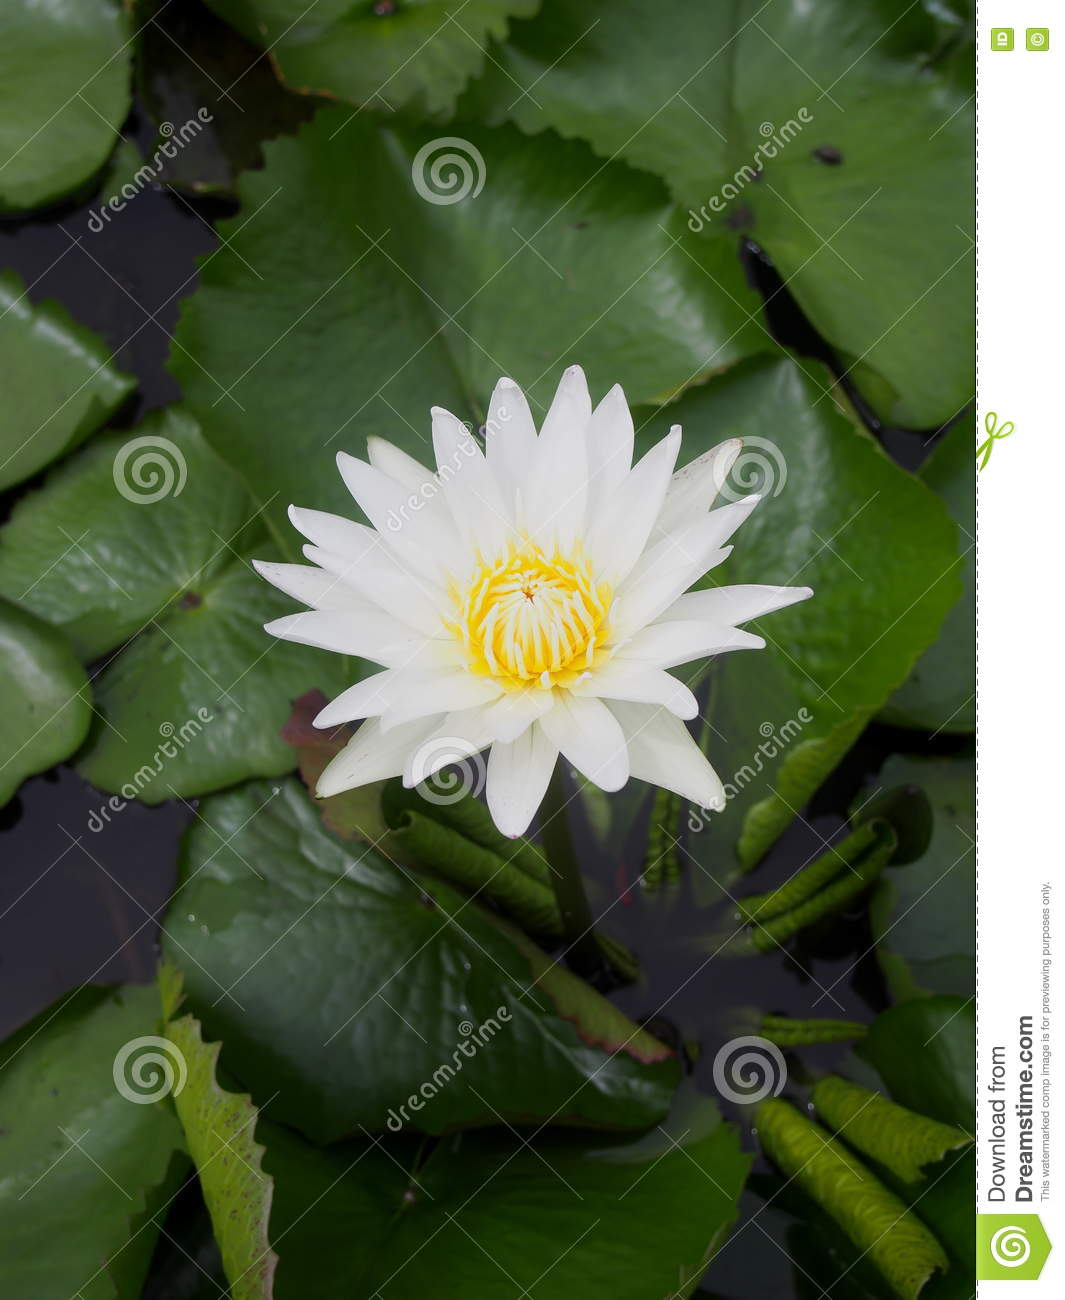 Romantic Clean White Lotus Flower Stock Photo Image Of Leaves